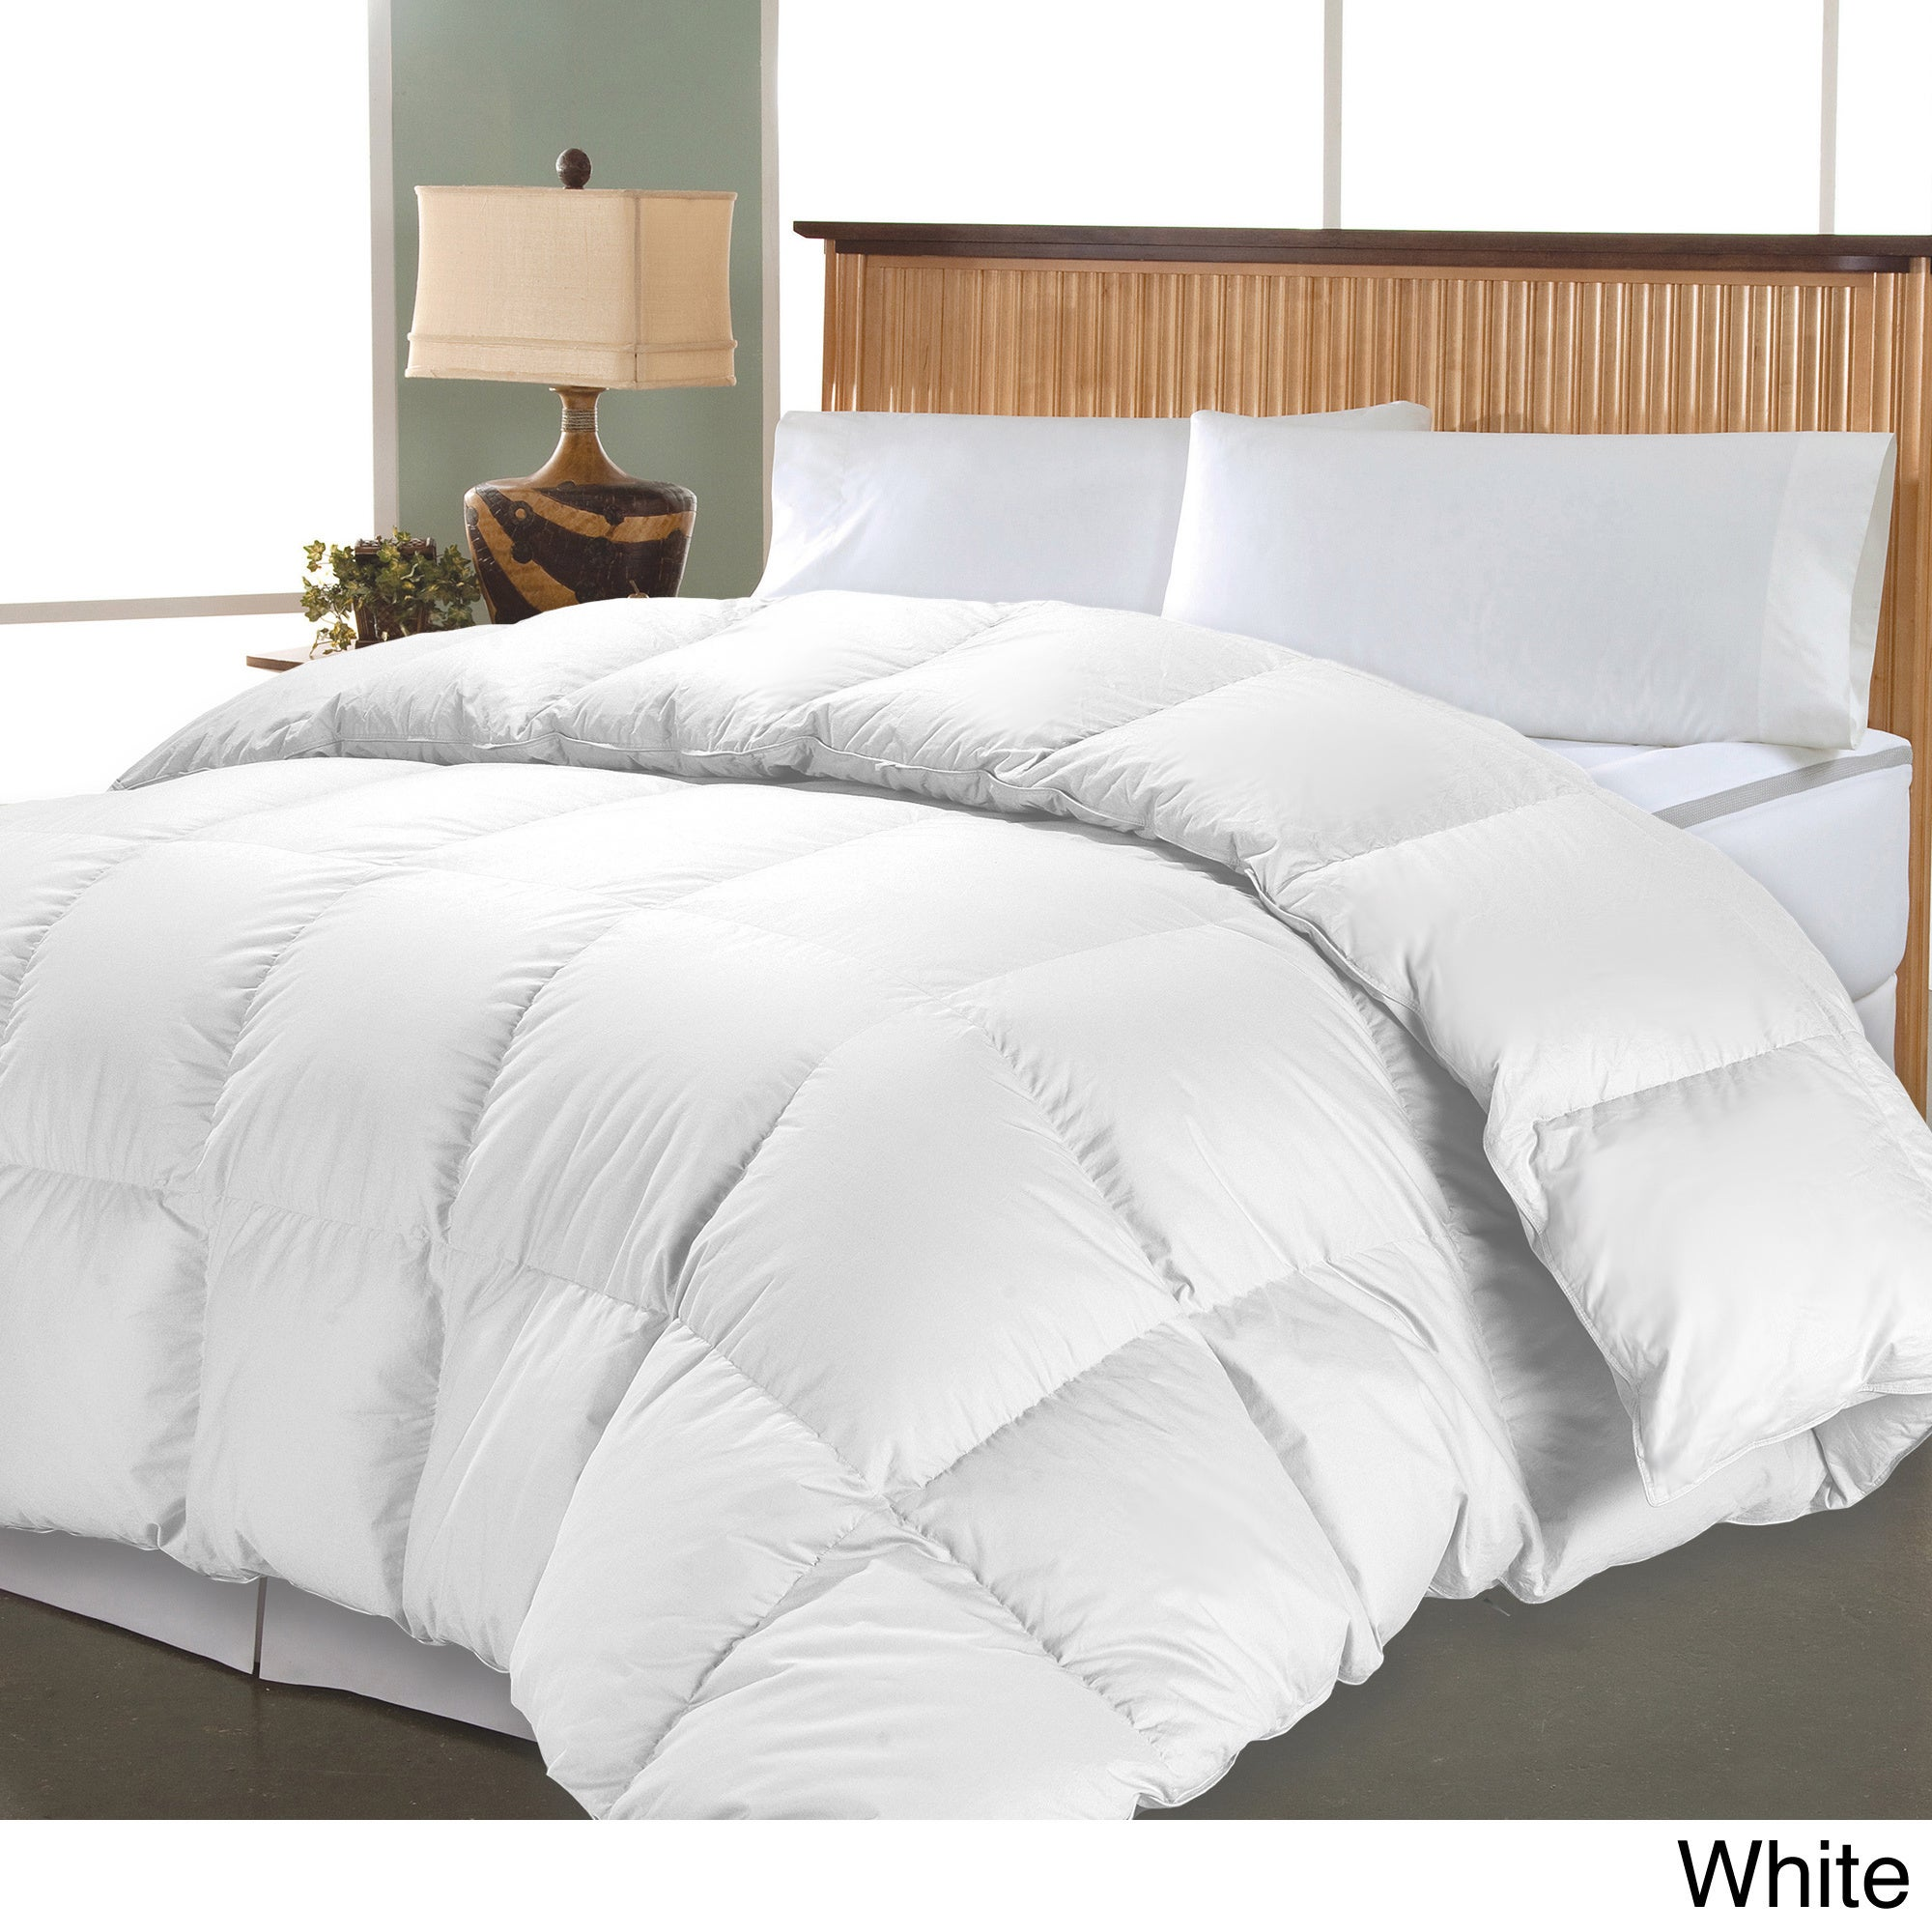 shipping premier osleep microfiber overstock product orders bedding on over alternative comforter free all down season number sleep bath